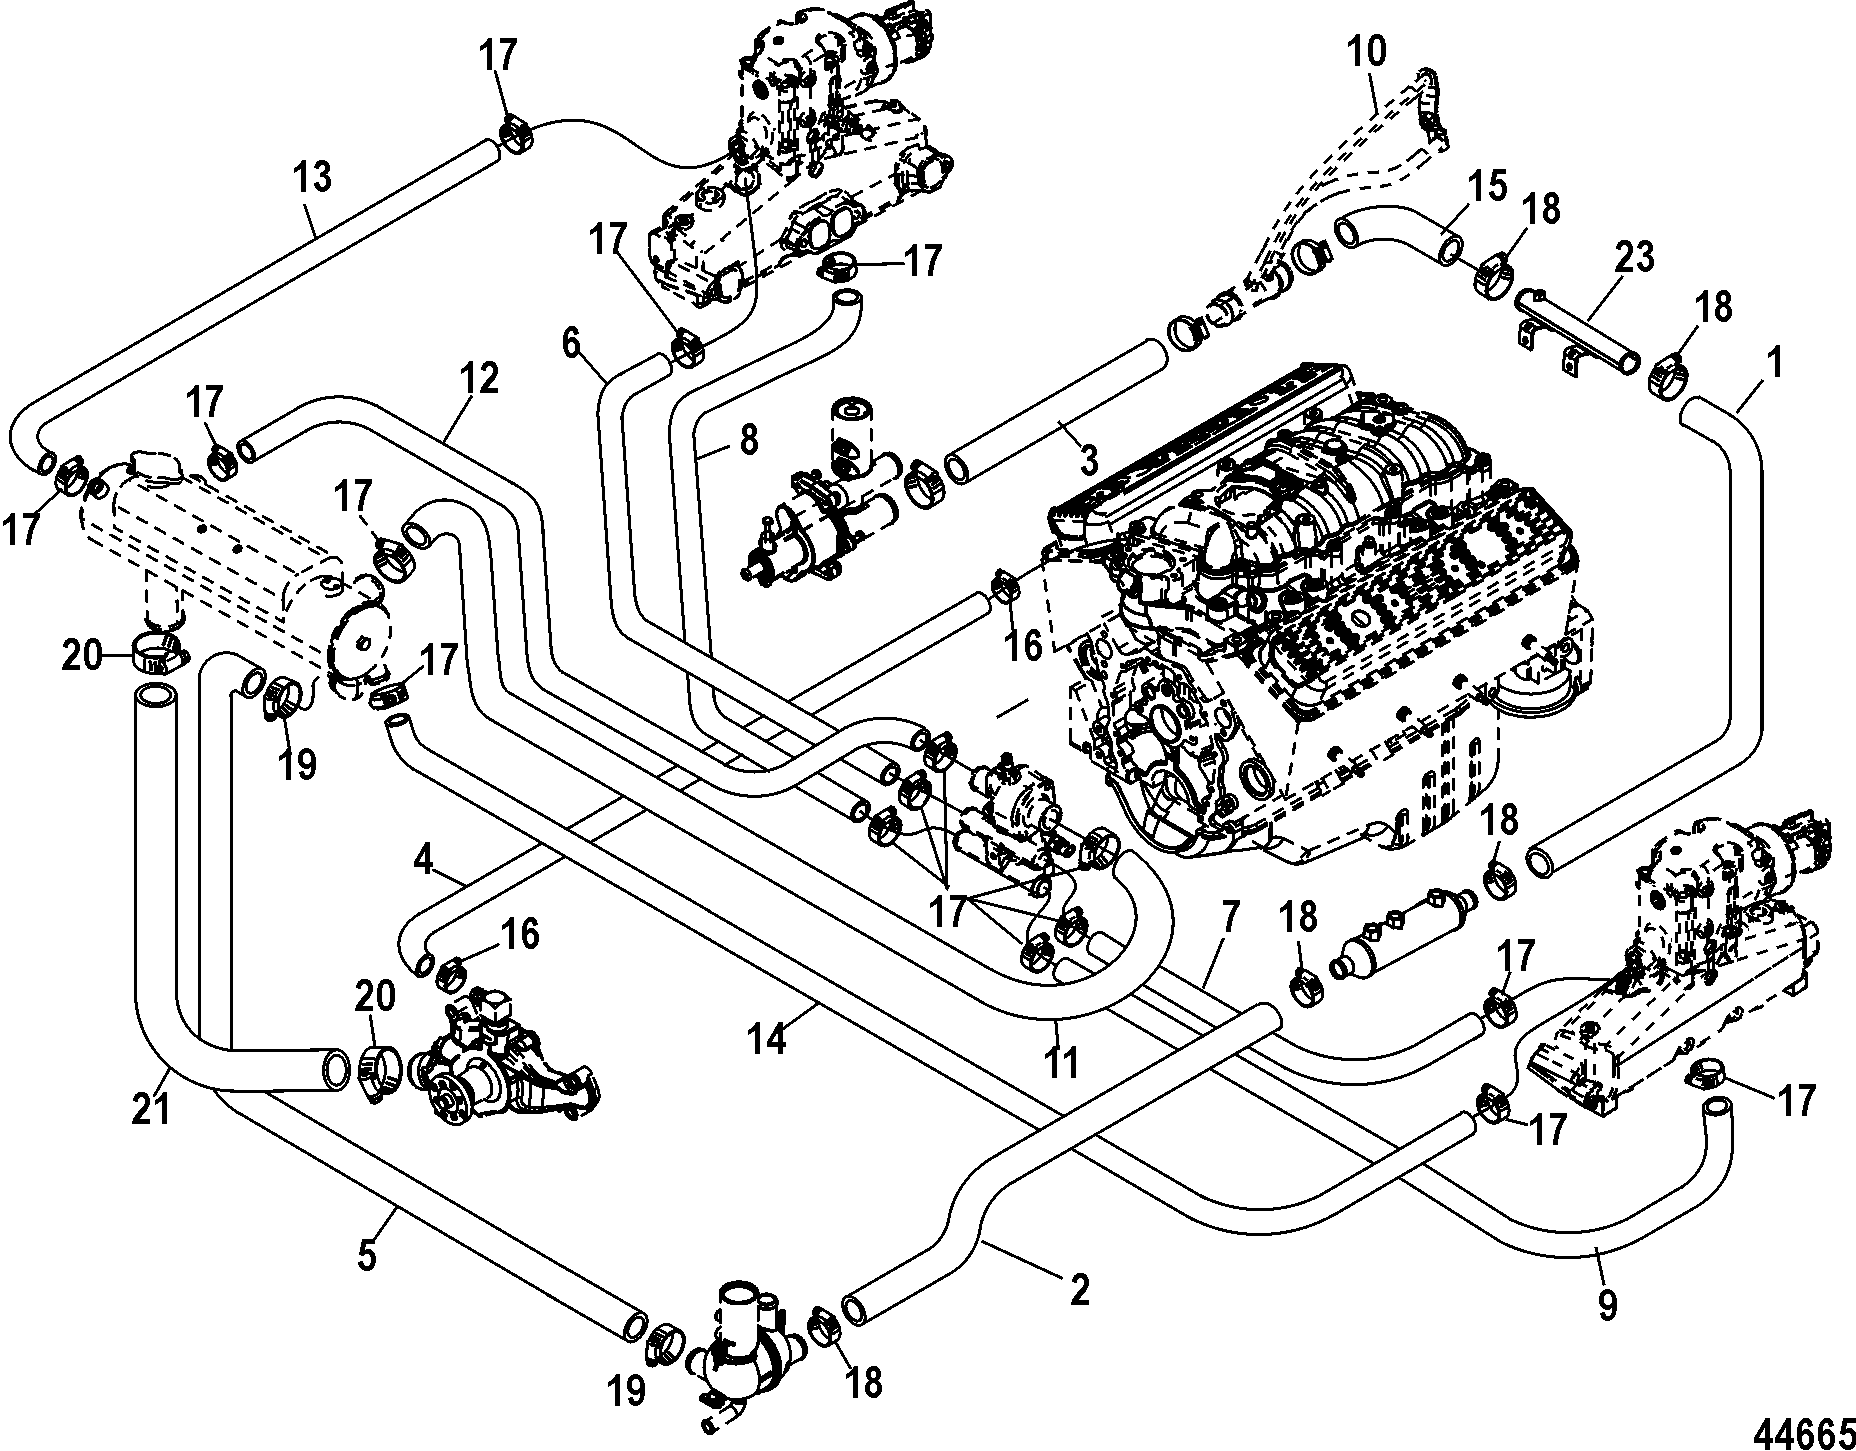 Mercruiser Wiring Diagram further Parts further 454 Mercruiser Engine Wiring Diagram besides Wiring Diagram Fisher Extreme V Plow also 7 4 Mercruiser Wiring Diagram. on mercathode system wiring diagram